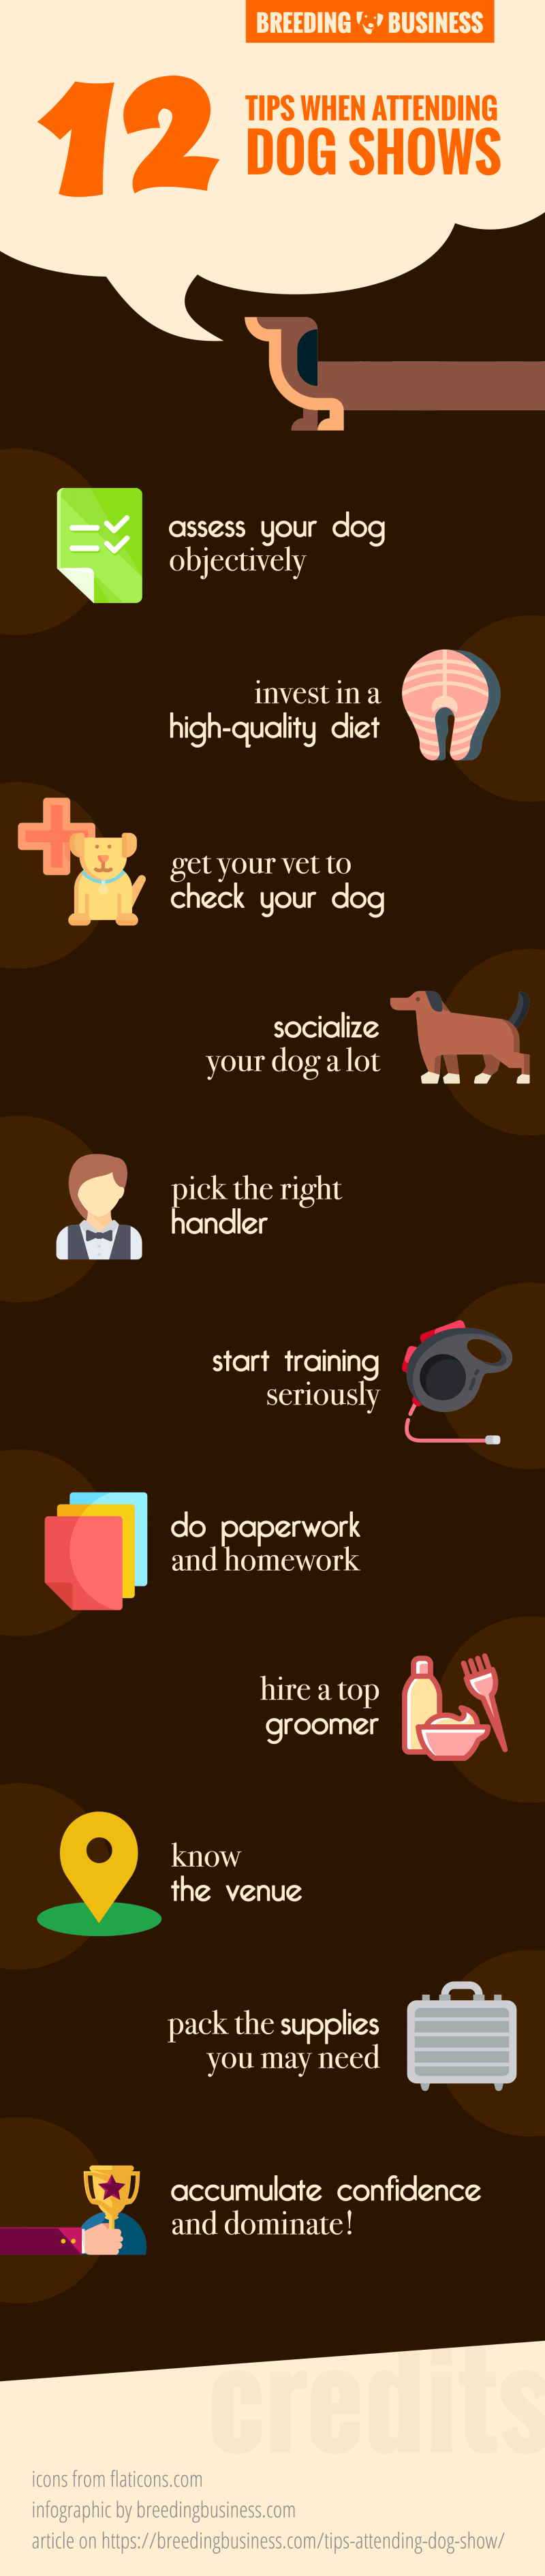 tips when attending dog shows (infographic)